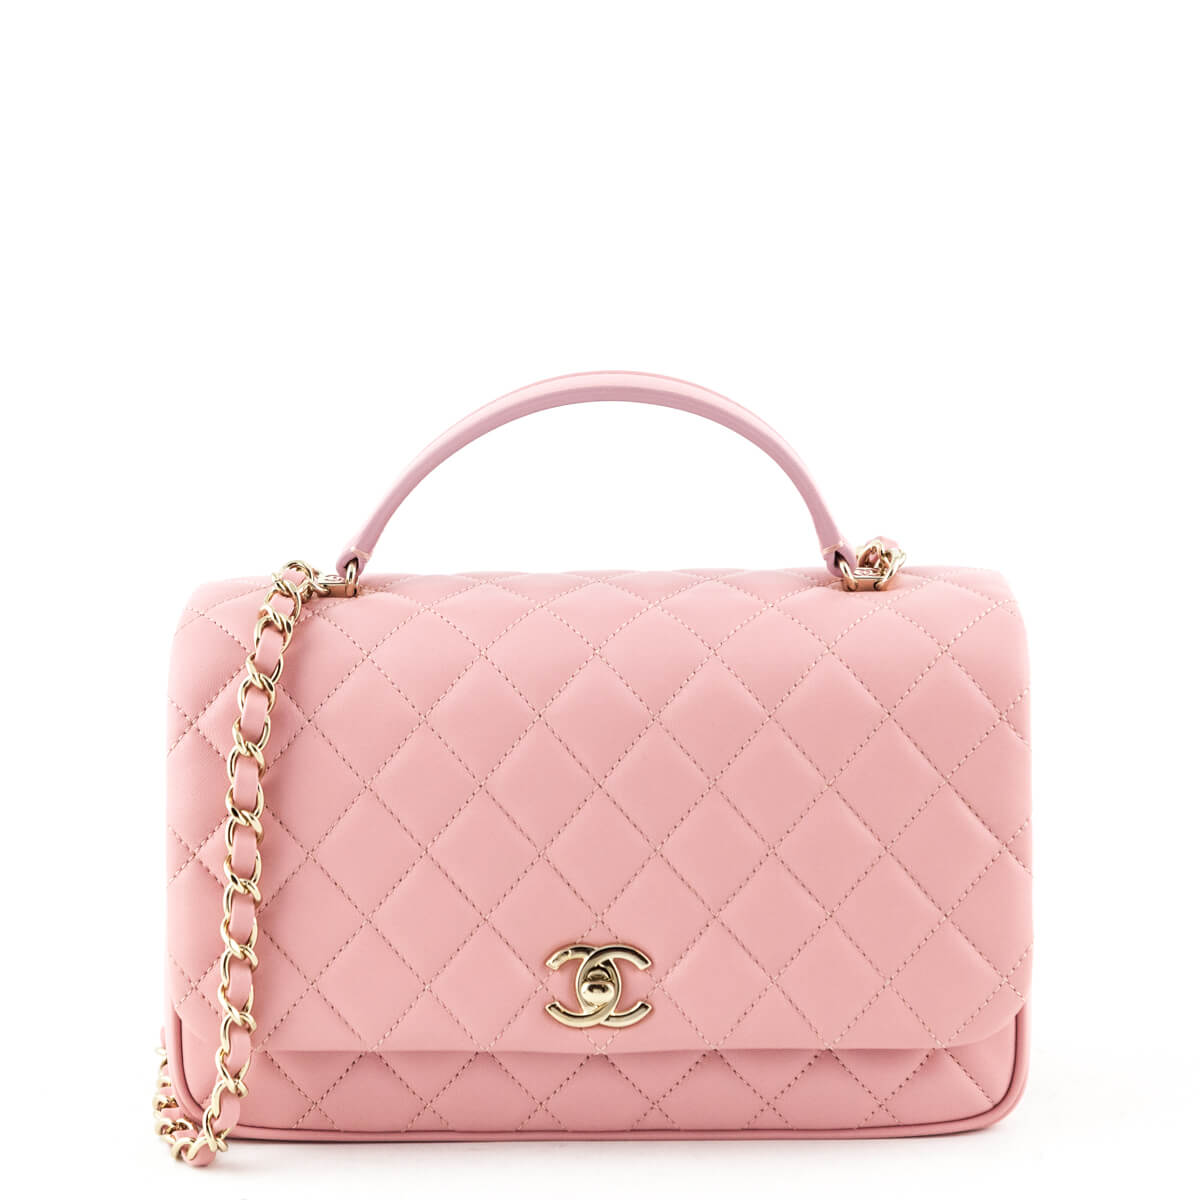 ee44e502e43006 Chanel Pink Quilted Lambskin Top Handle Flap Bag - LOVE that BAG - Preowned  Authentic Designer ...